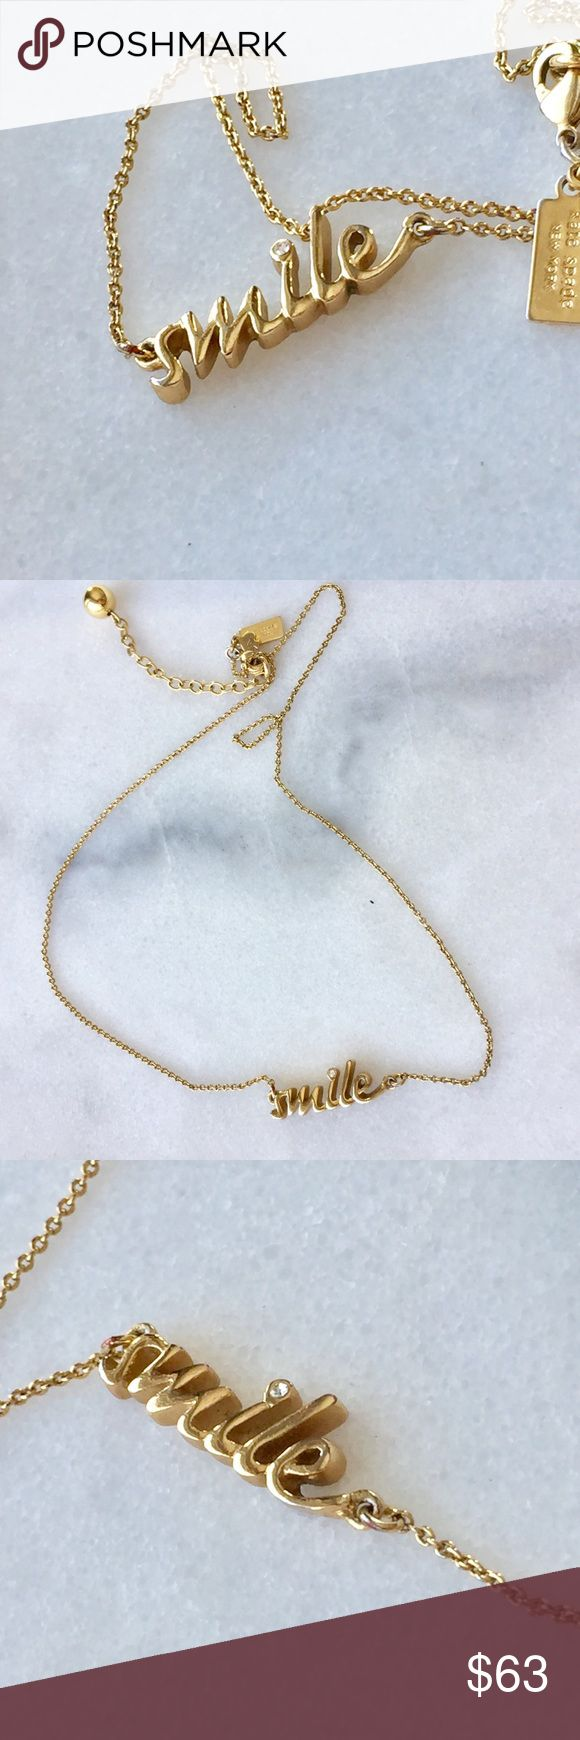 "♠️Kate Spade ""Smile"" Gold Toned Word Necklace♠️ Spread happiness wherever you go! Slight tarnishing on the back of the ""smile"" pendant, but the front is in great condition. Cleaned ultrasonically just for you✨ kate spade Jewelry Necklaces"